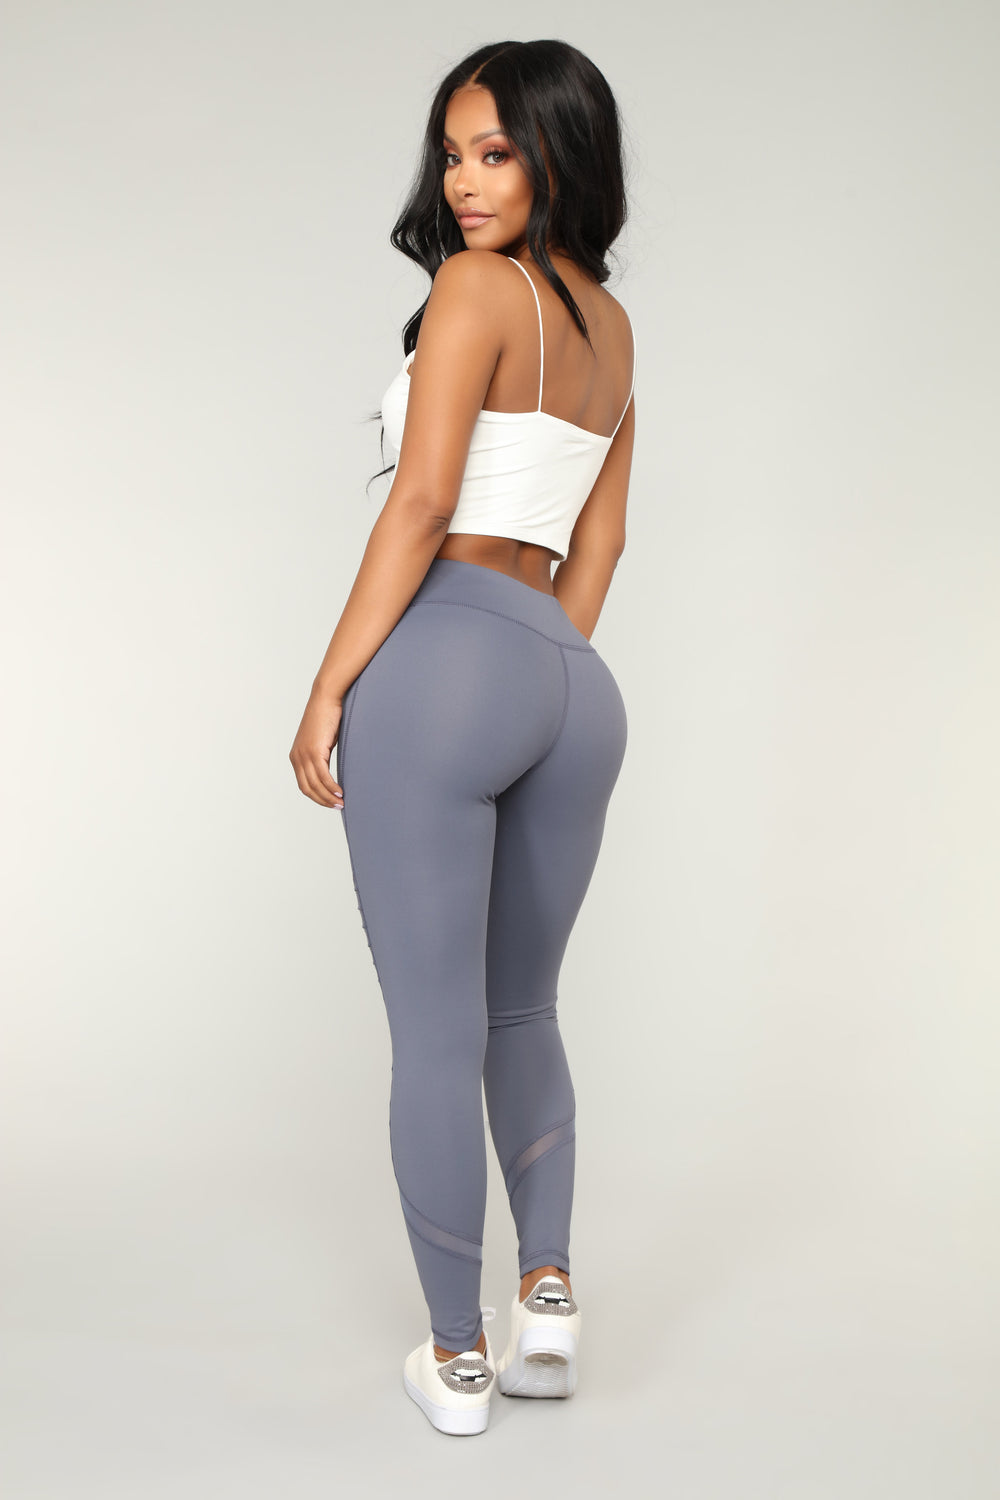 Bust A Move Lace Up Performance Leggings - Charcoal